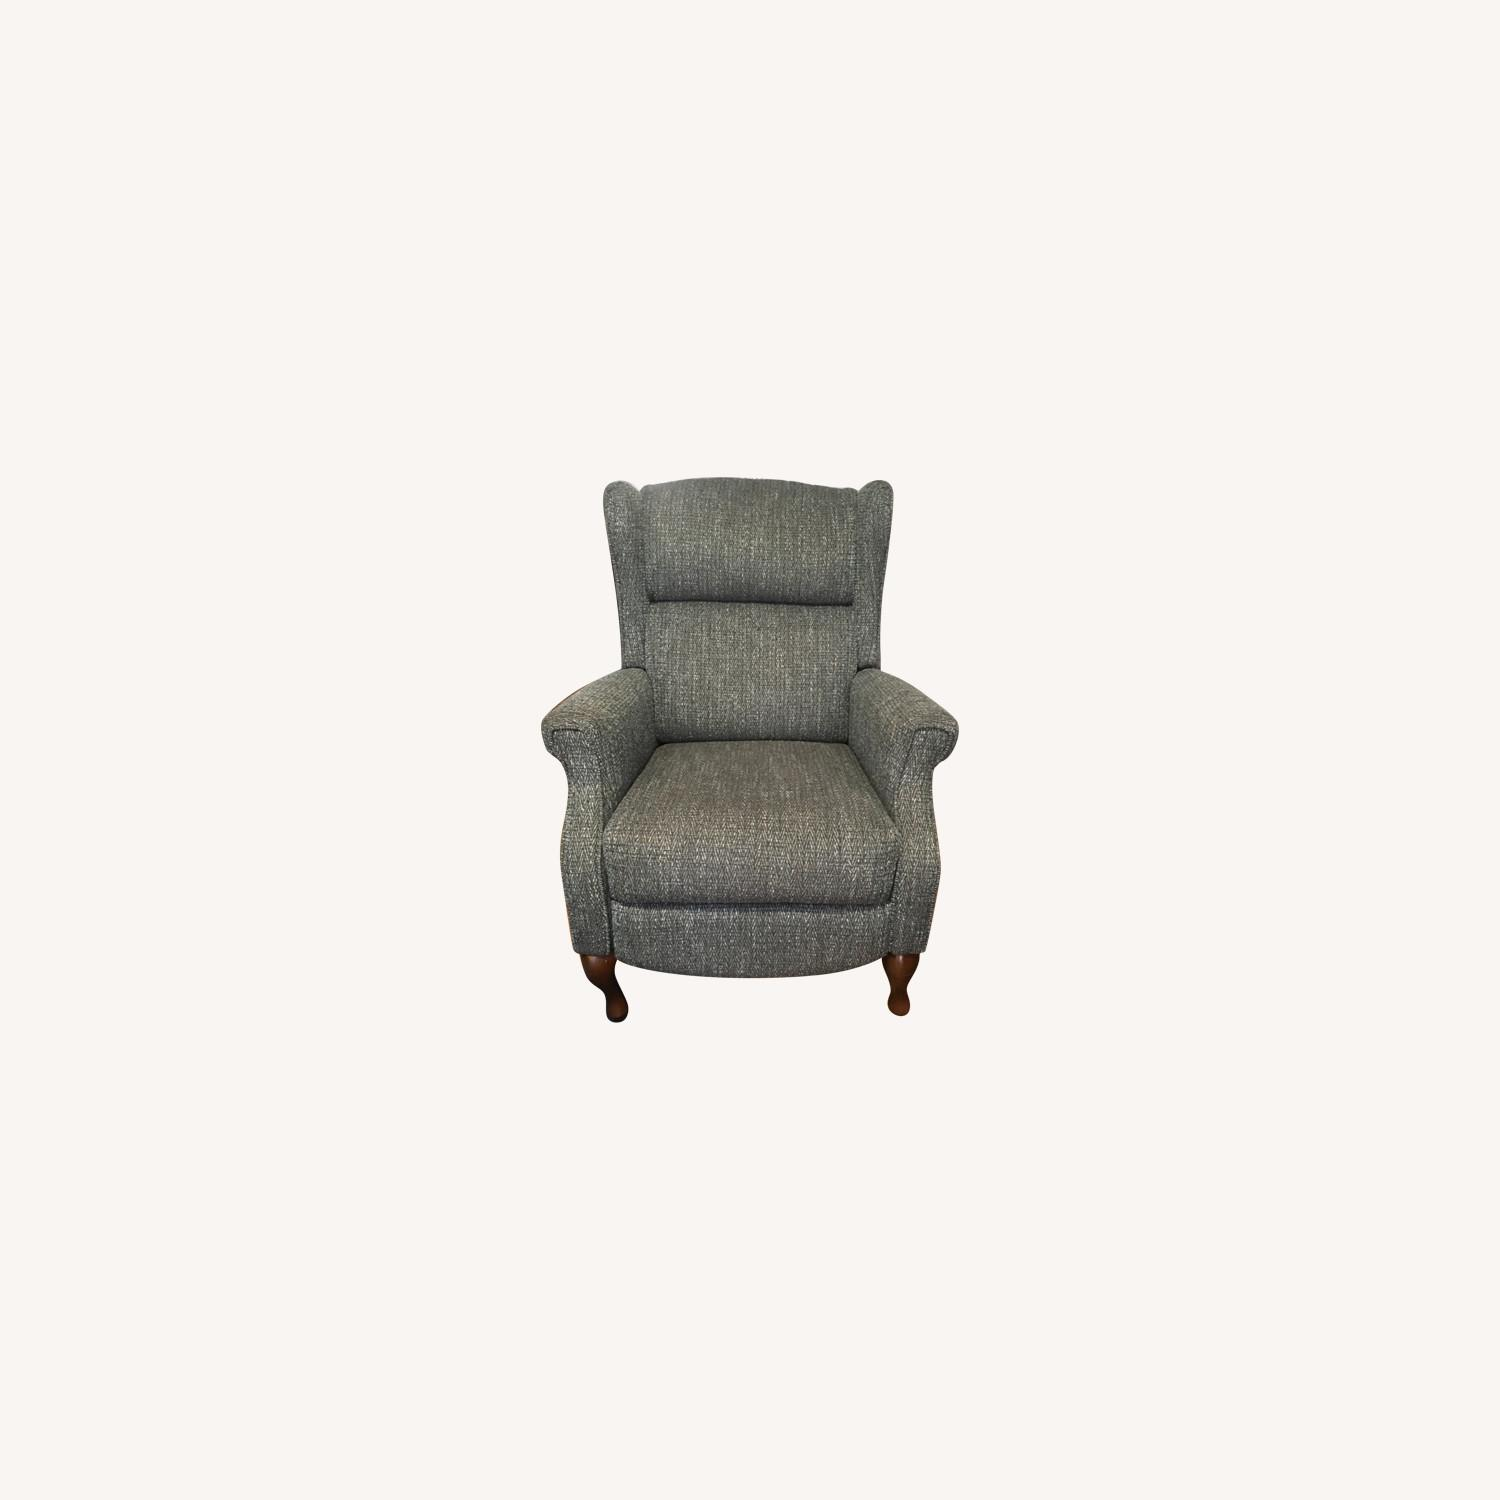 Macy's Blue Gray Pushback Recliner - image-5